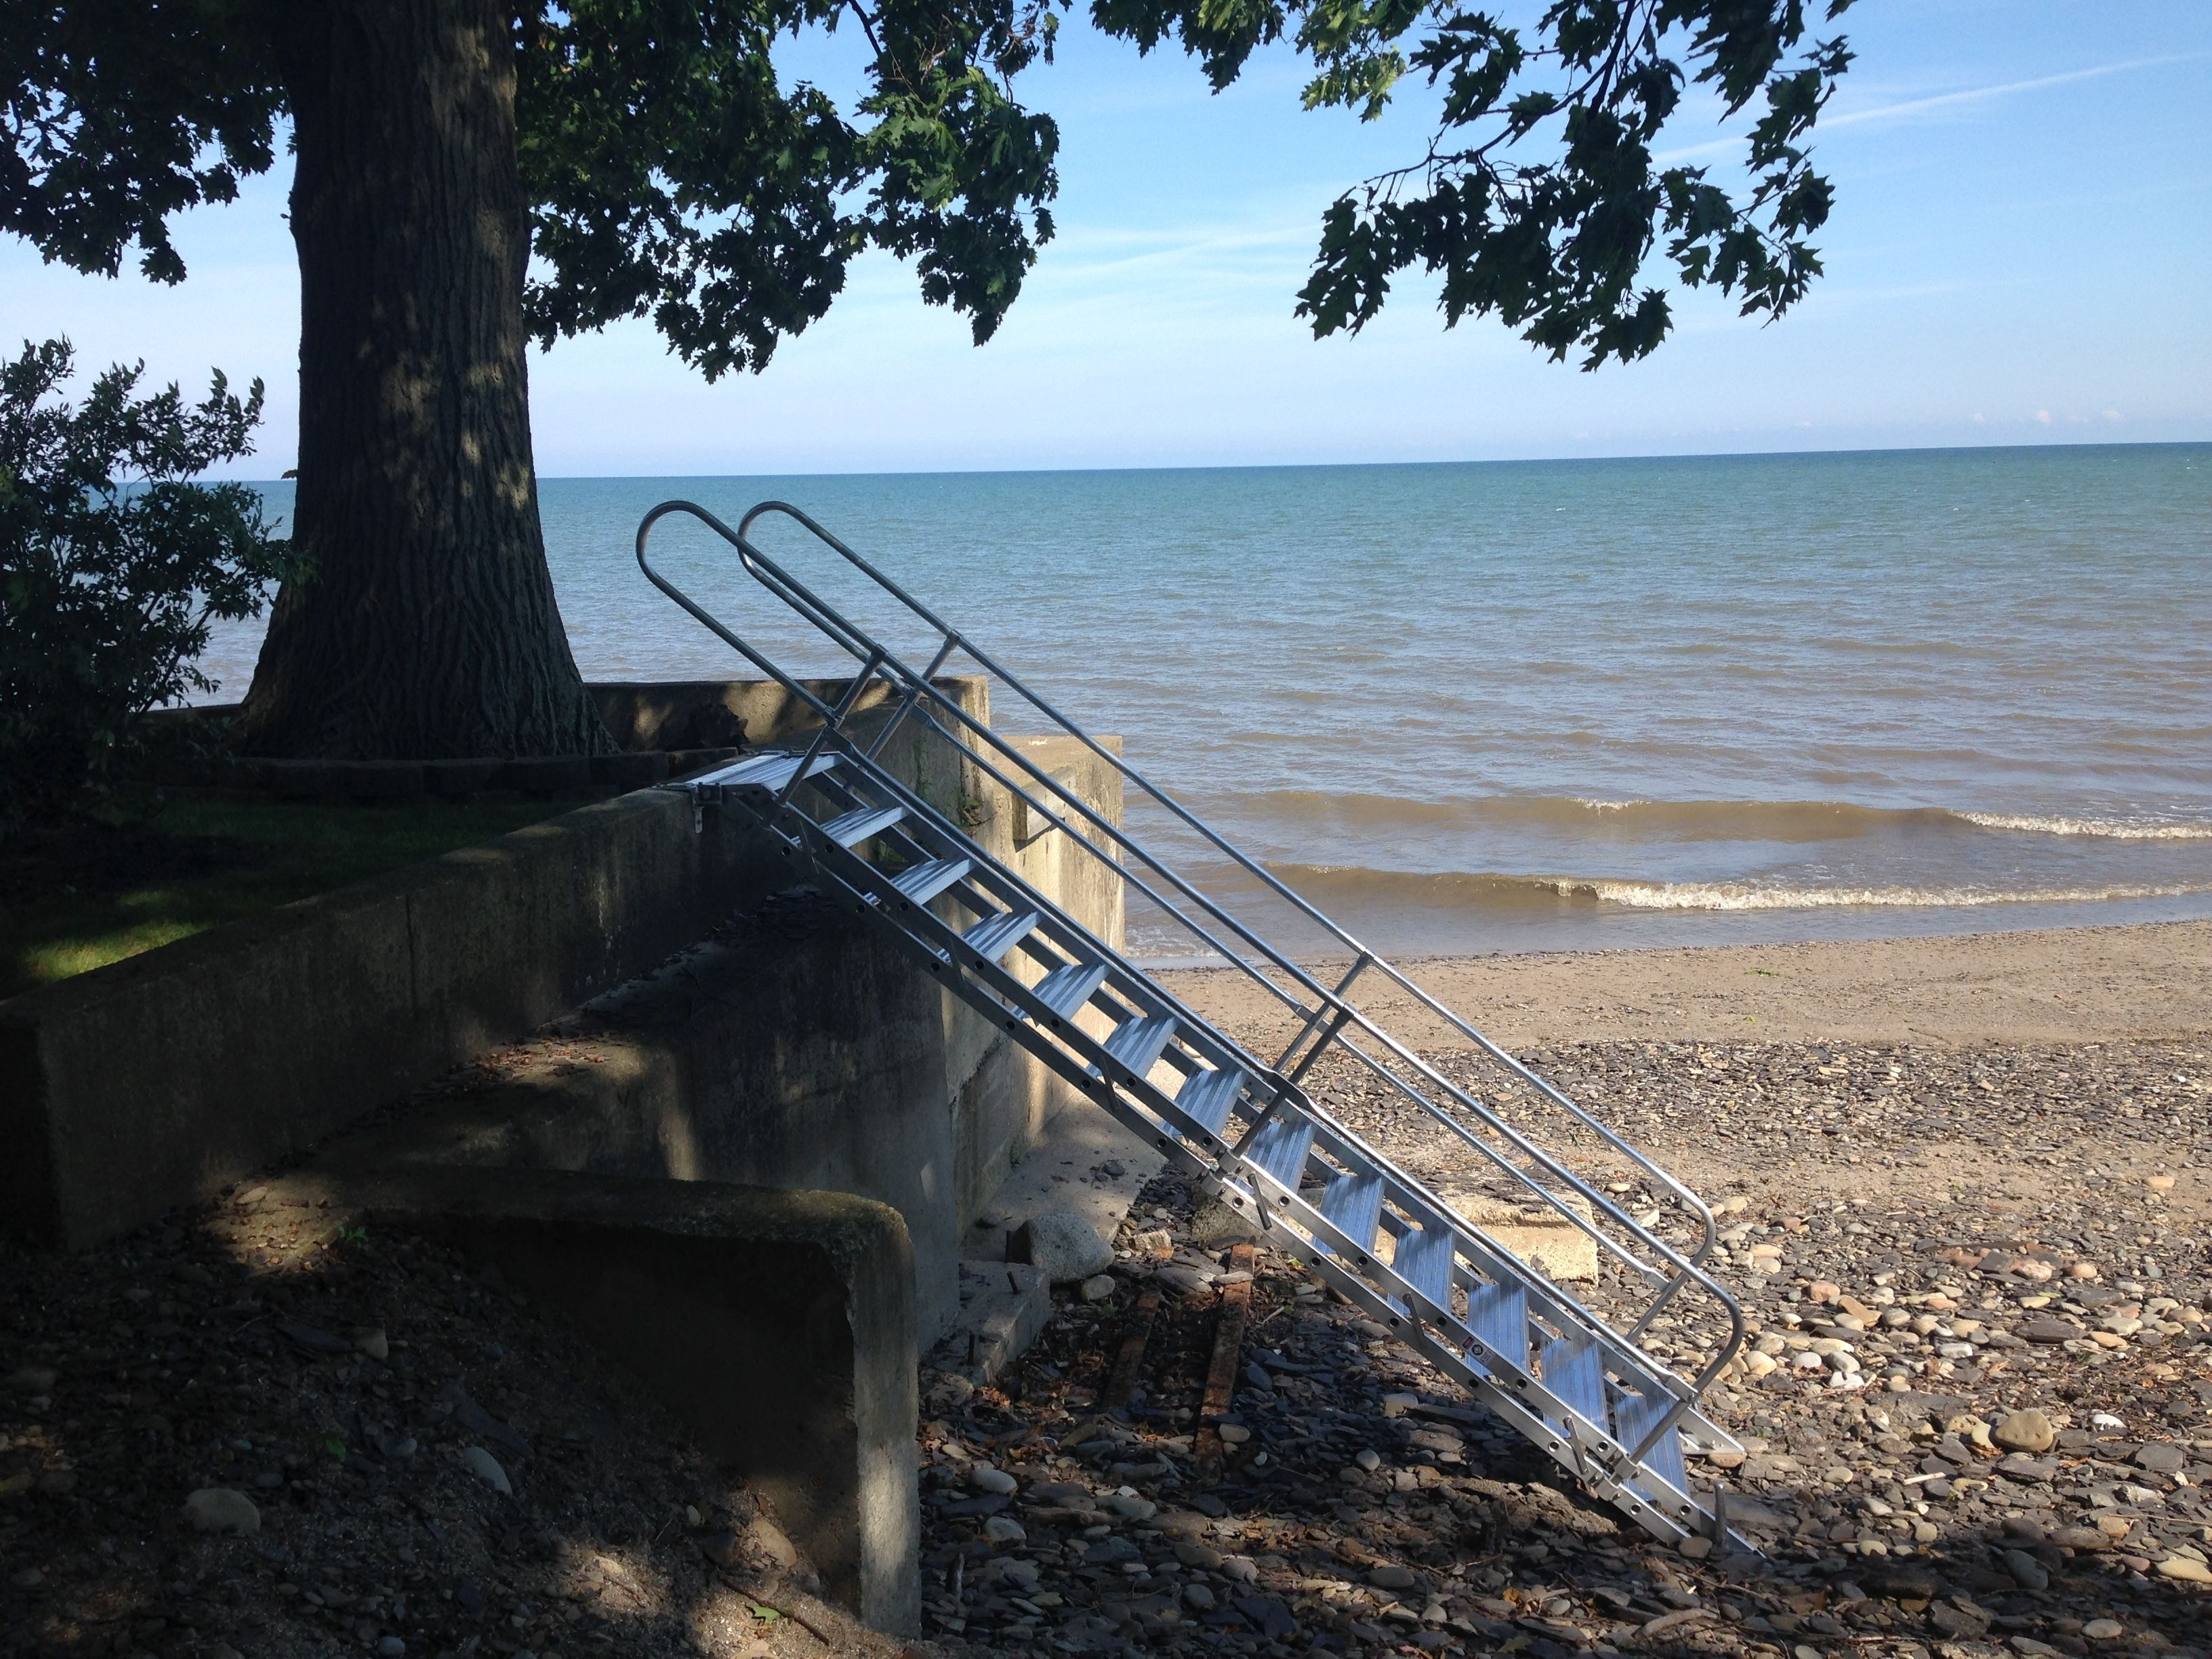 Superior Lake Erie Stairway Beach Access #lakeerie #stairway #beachaccess #beachlife